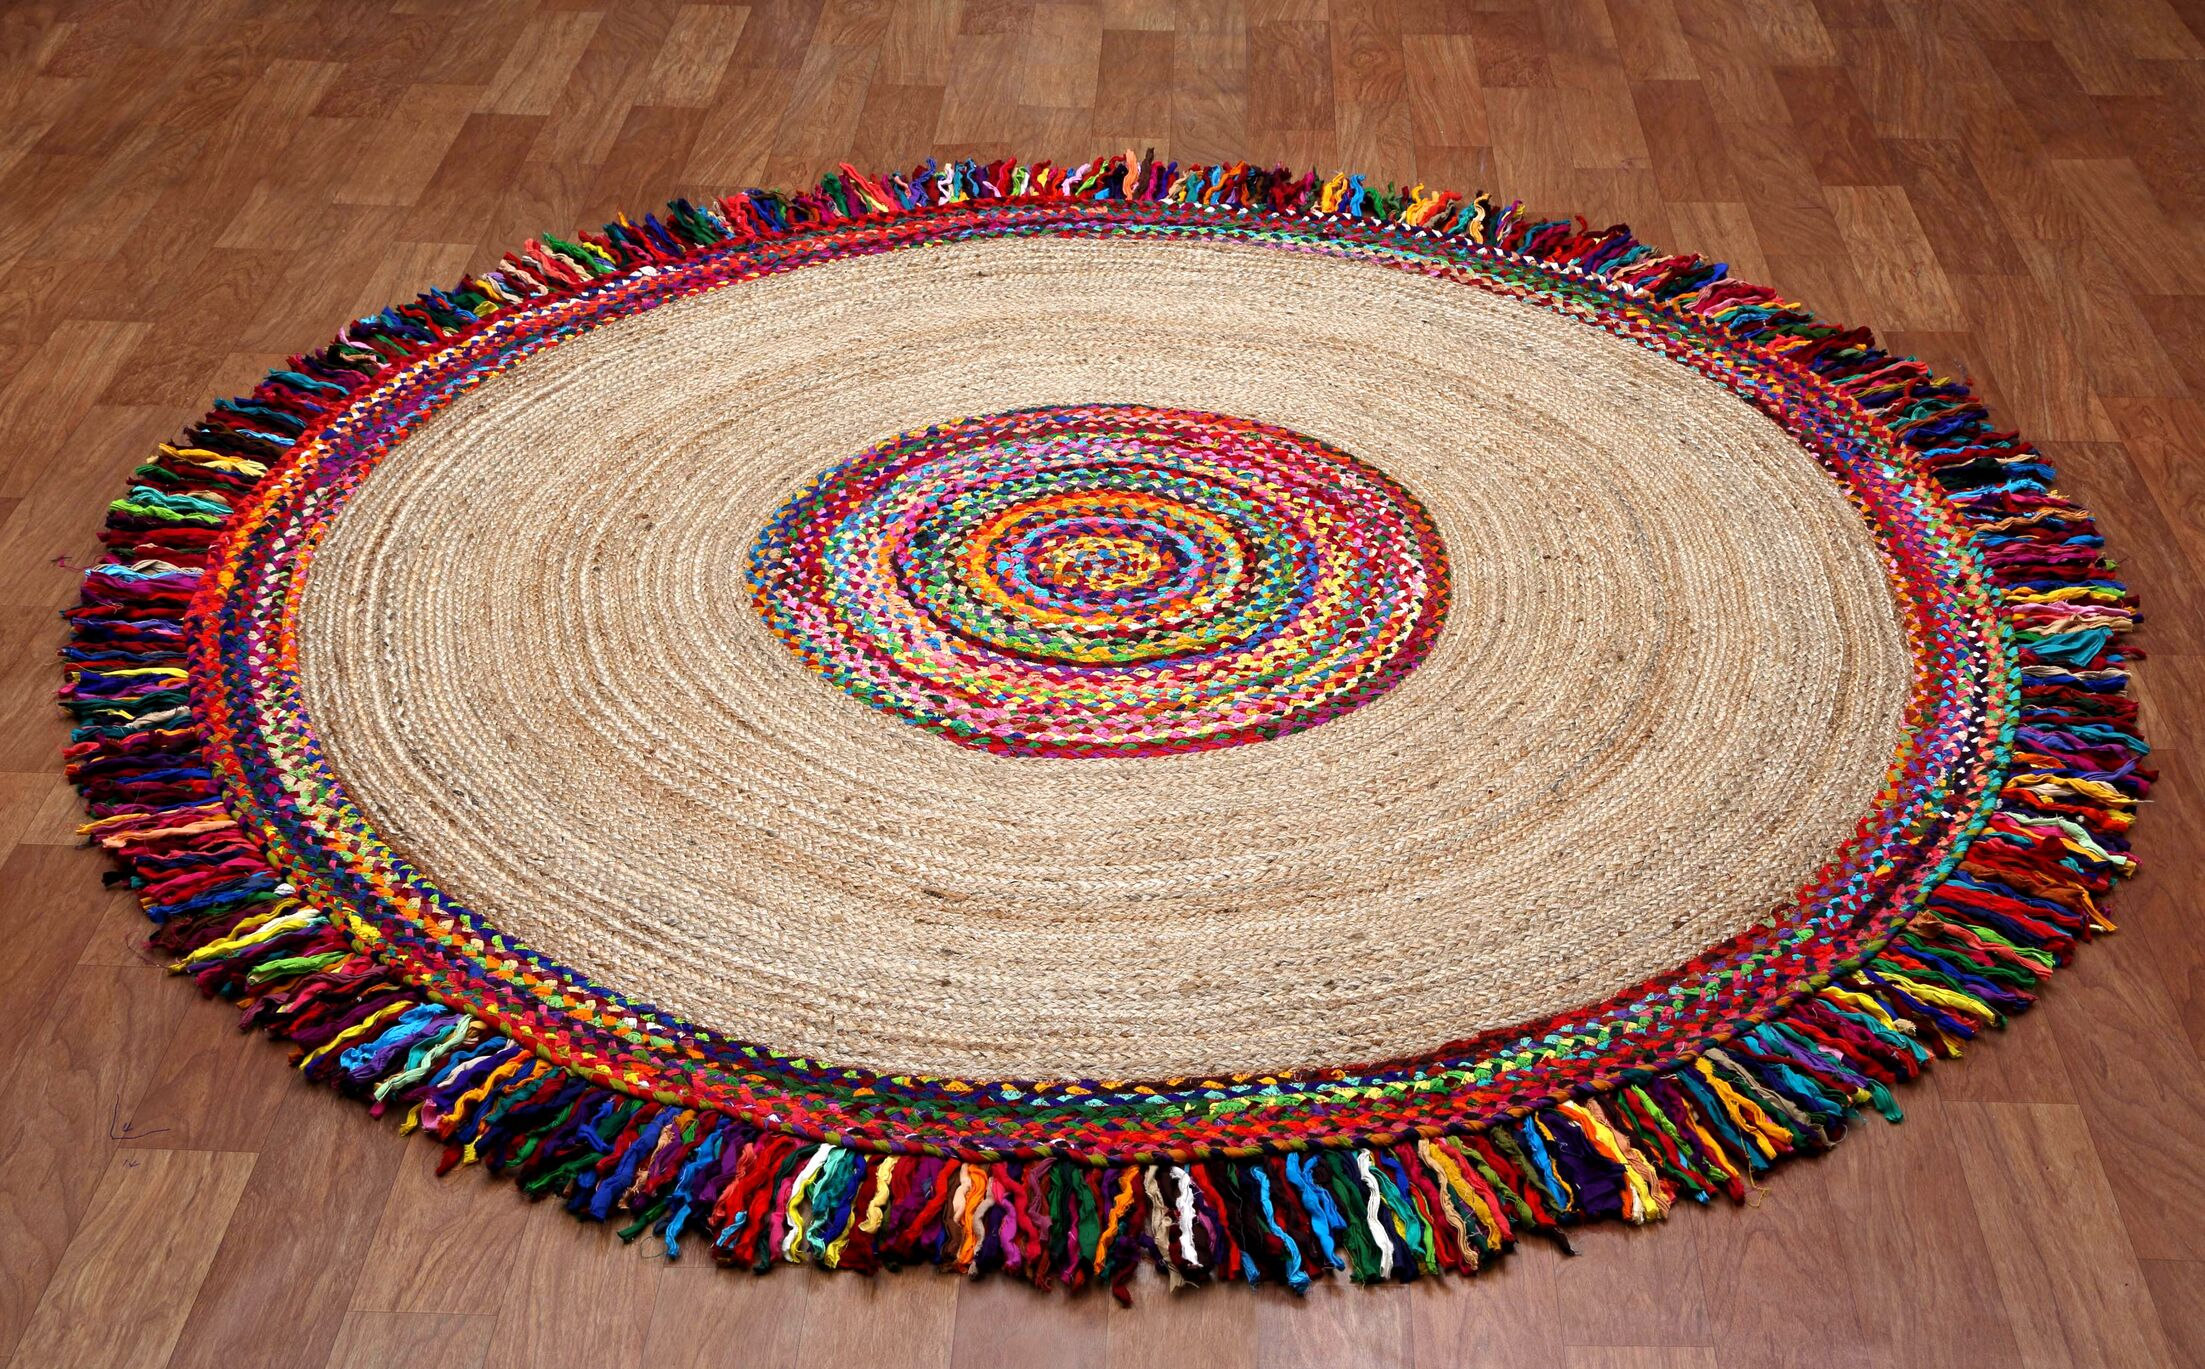 Brilliant Ribbon Round Racetrack Hand-Loomed Yellow/Red Area Rug Rug Size: Round 8'